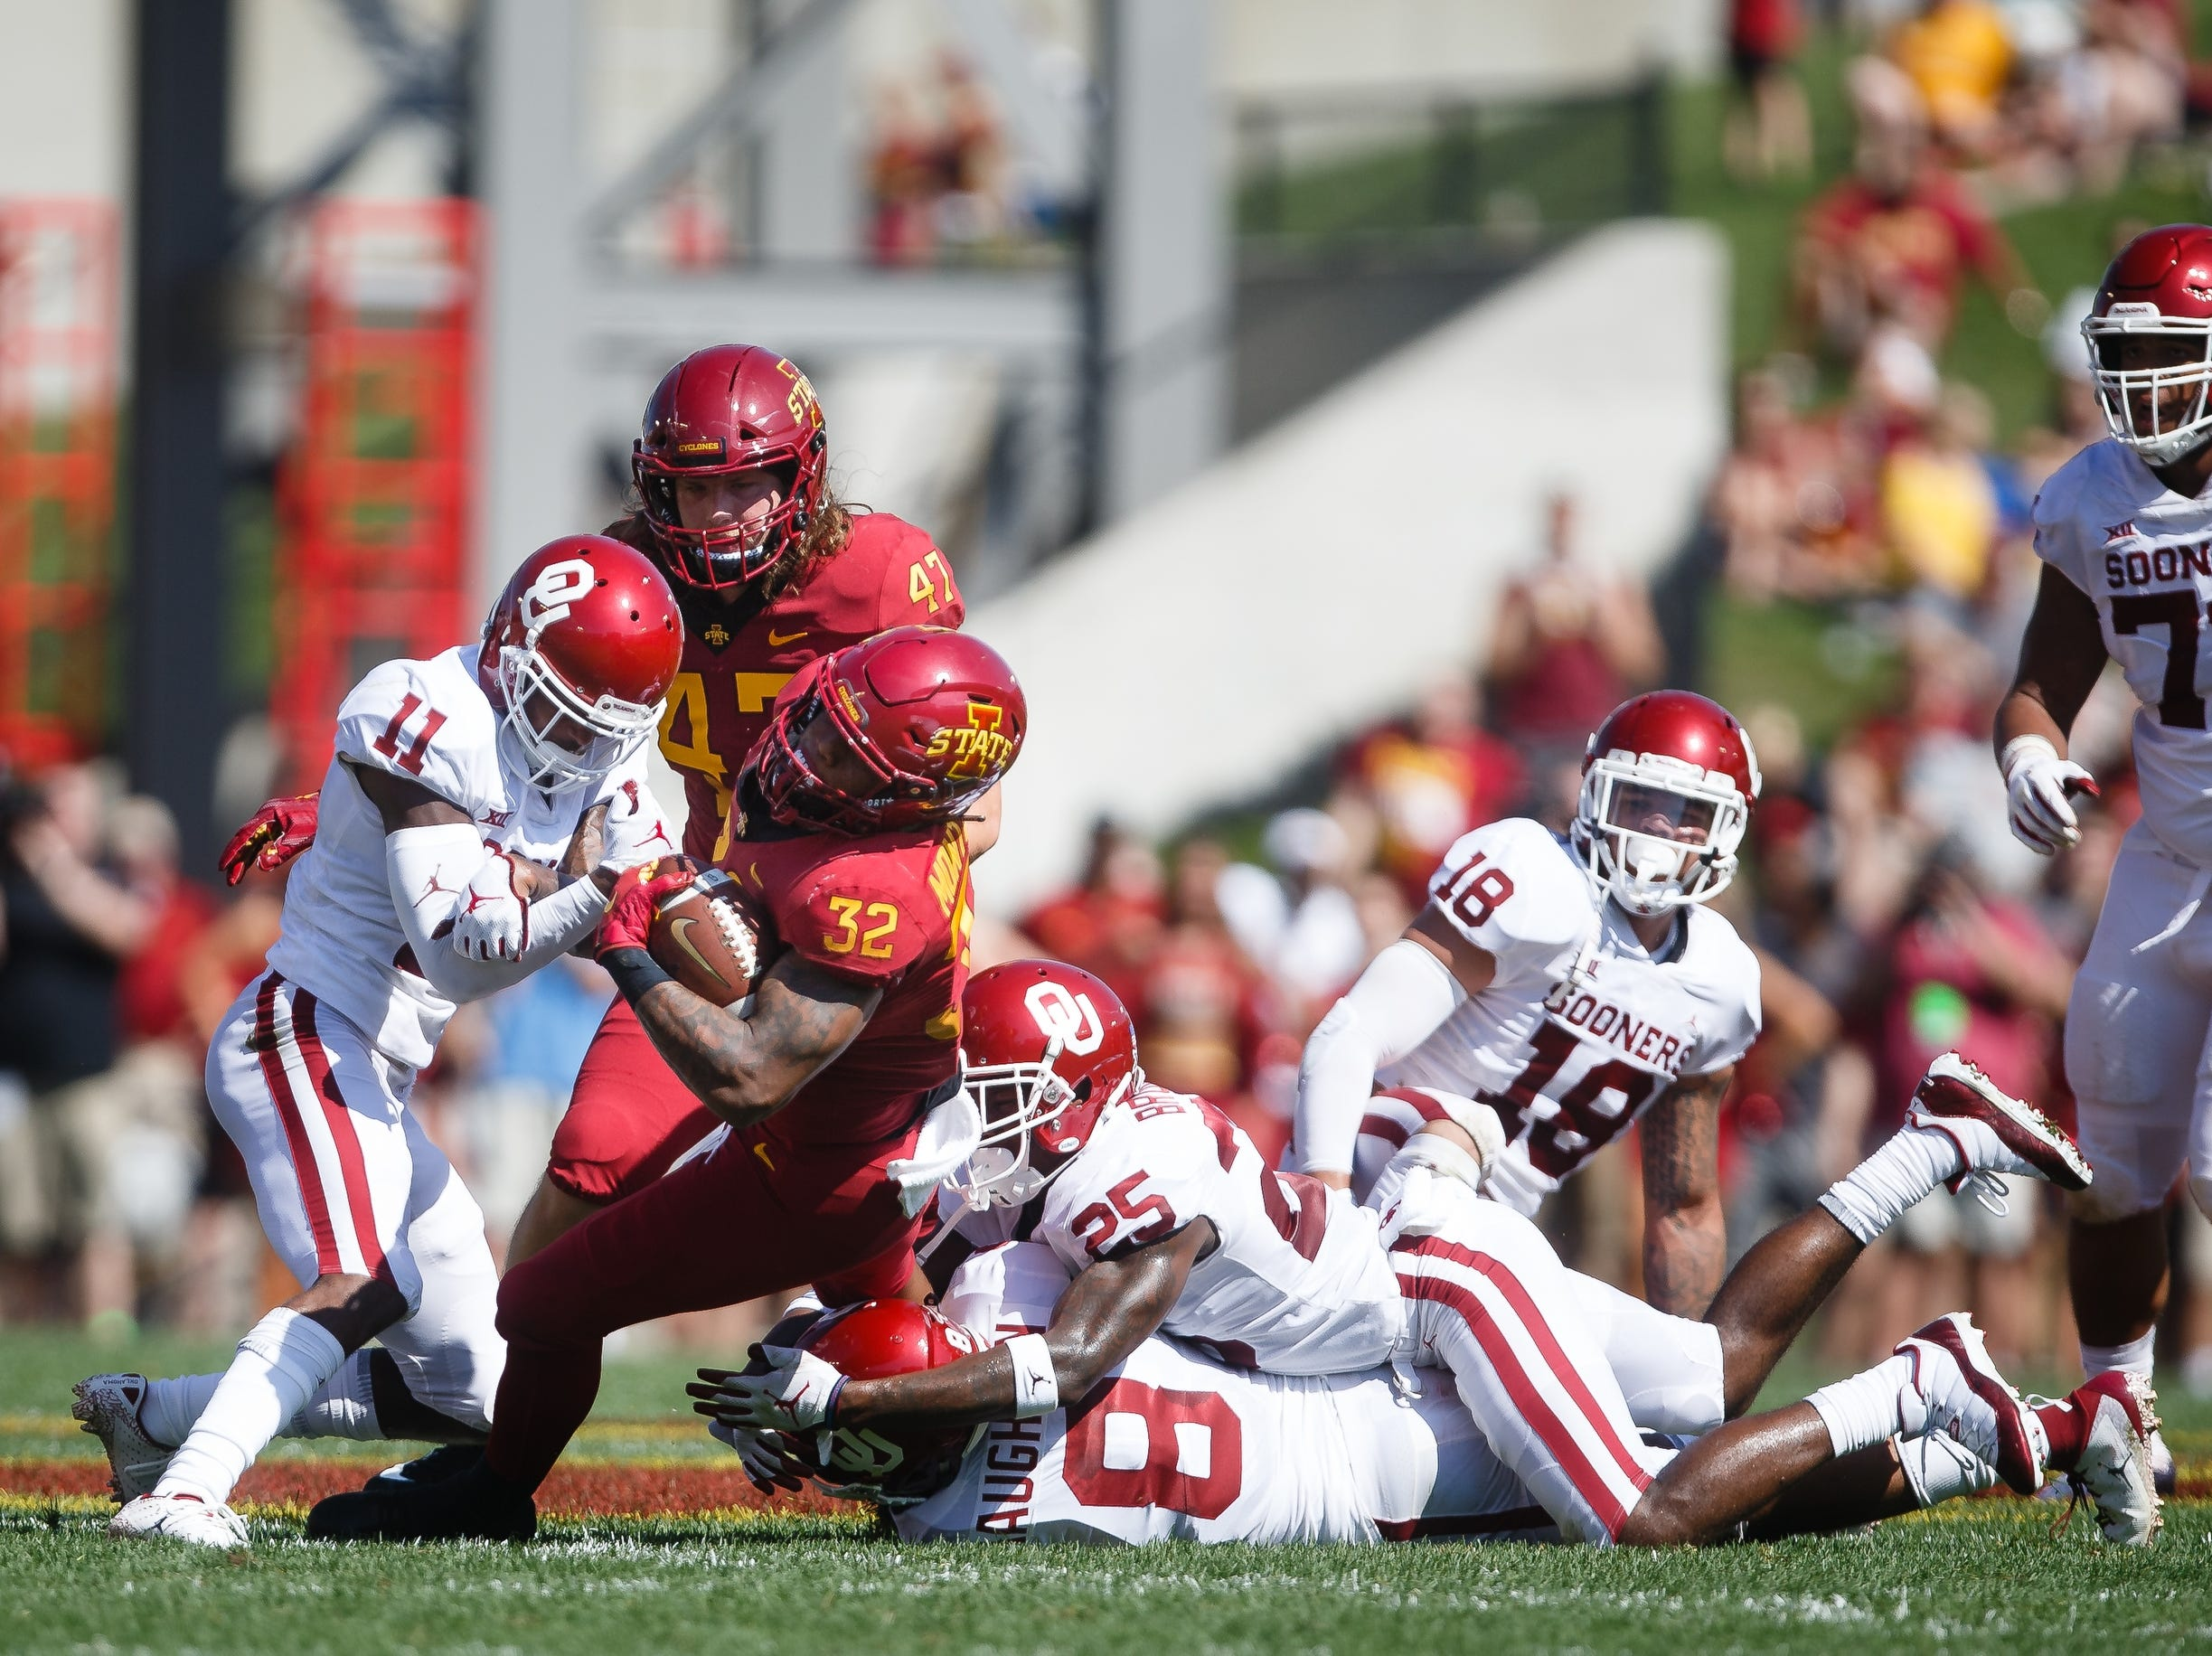 Iowa State's David Montgomery (32) rushes during their football game at Jack Trice Stadium on Saturday, Sept. 15, 2018 in Ames. Oklahoma would go on to win 37-27.